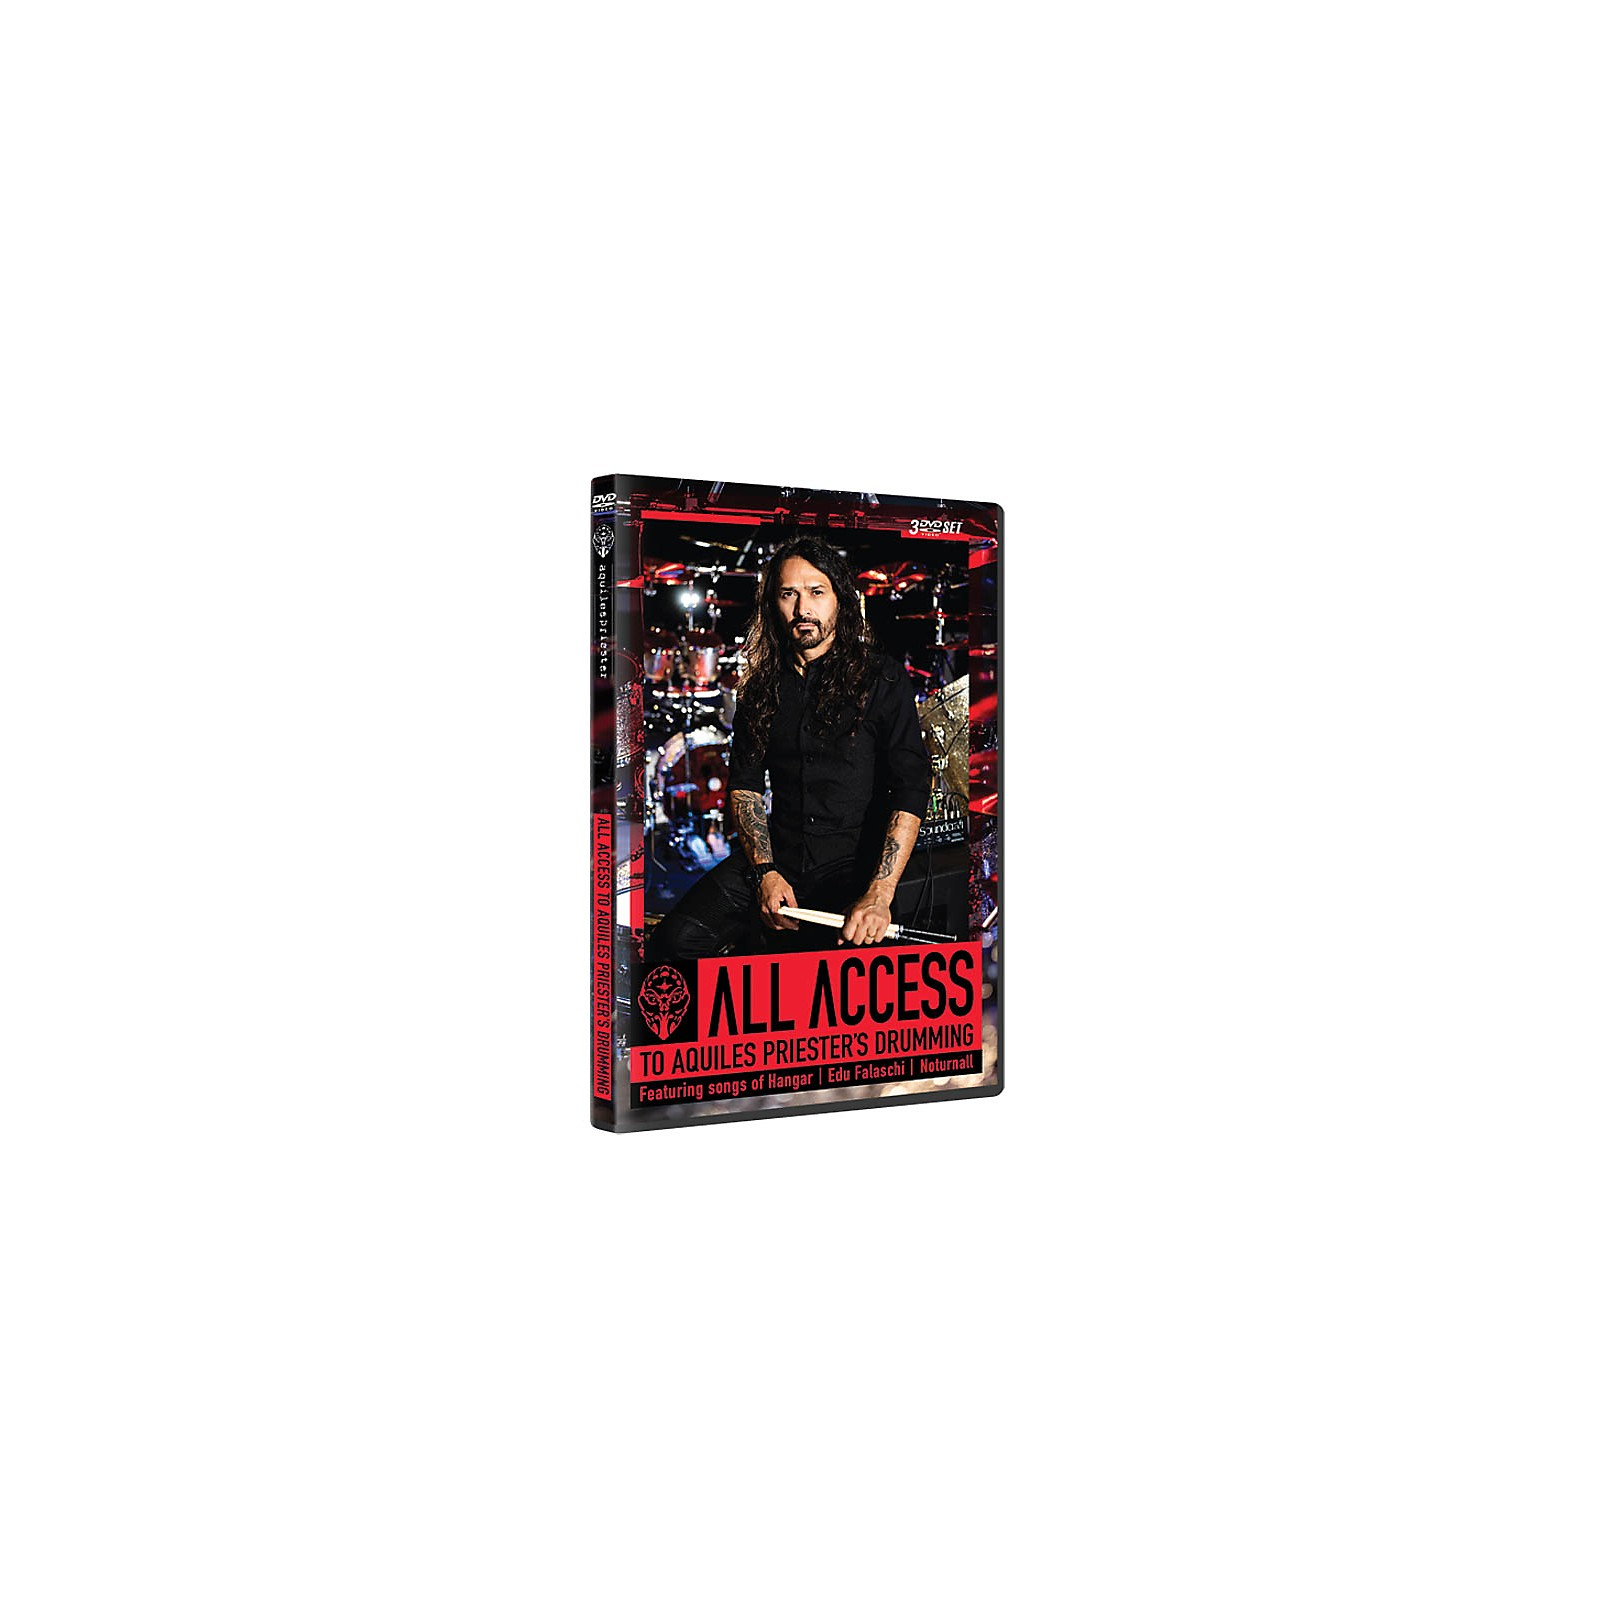 Hudson Music All Access to Aquiles Priester's Drumming Featuring Songs of Hangar, Edu Falaschi, Noturnall DVD